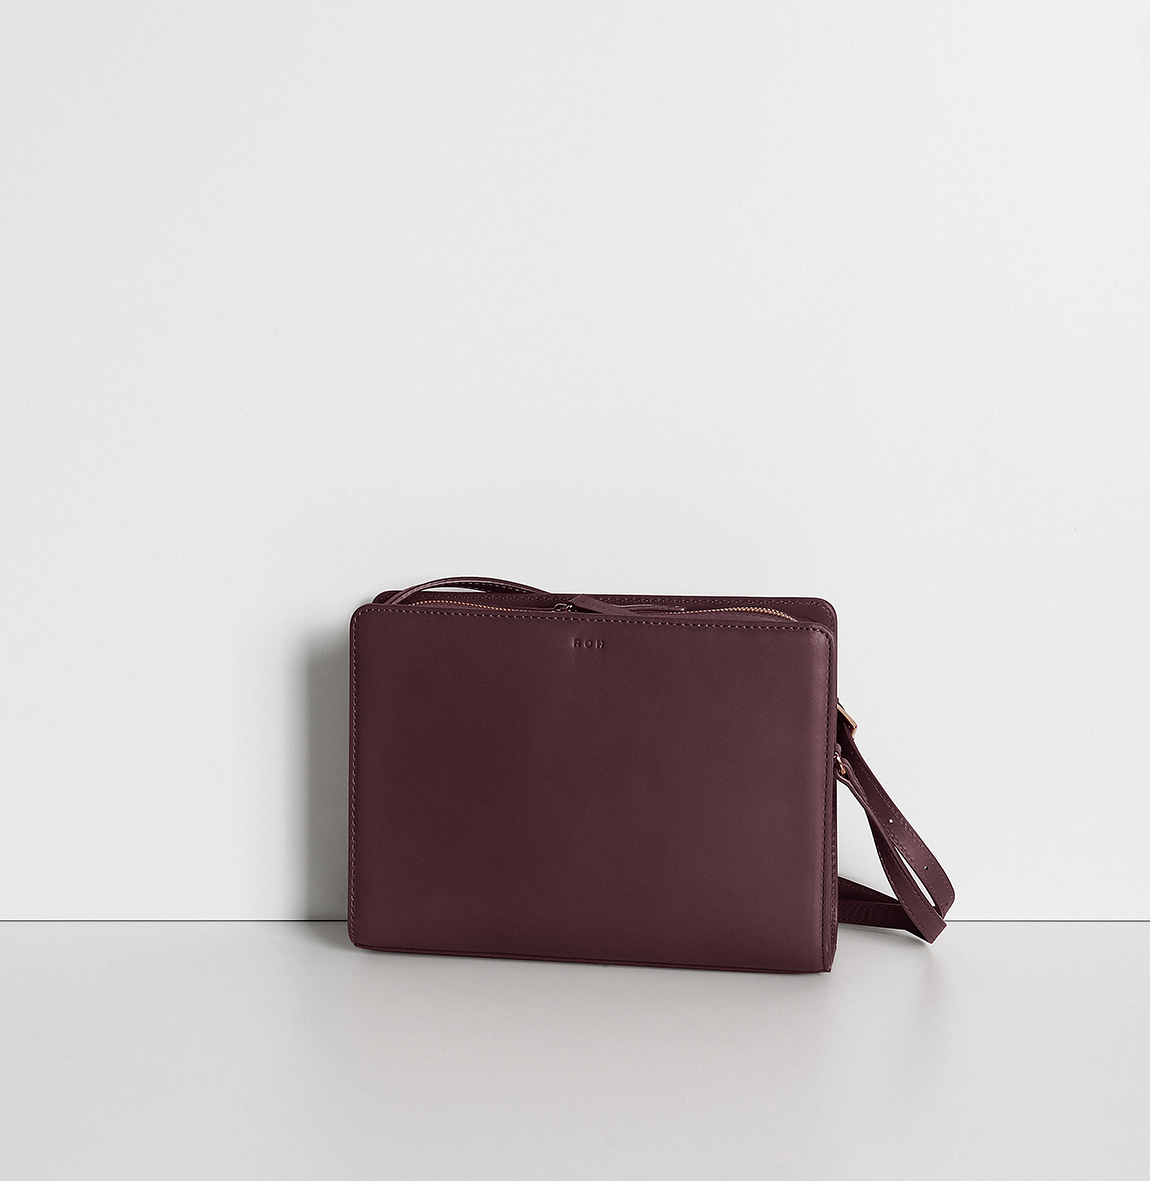 Squarebag Burgundy